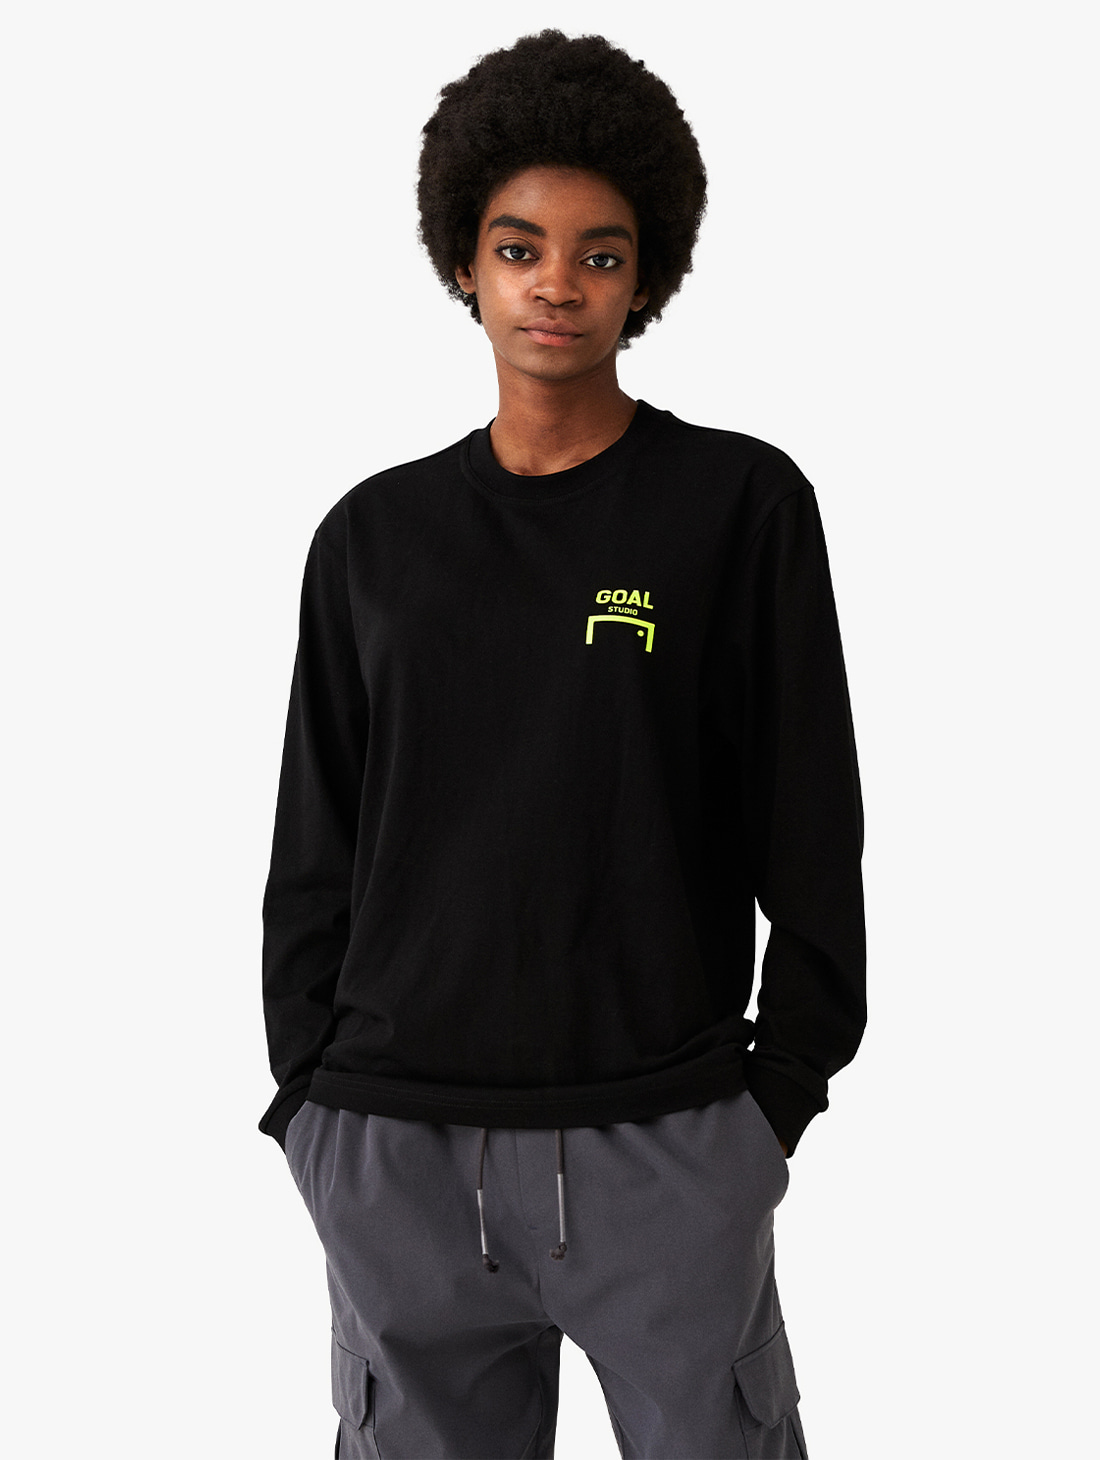 LOGO LONG SLEEVE TEE (3 Colors)